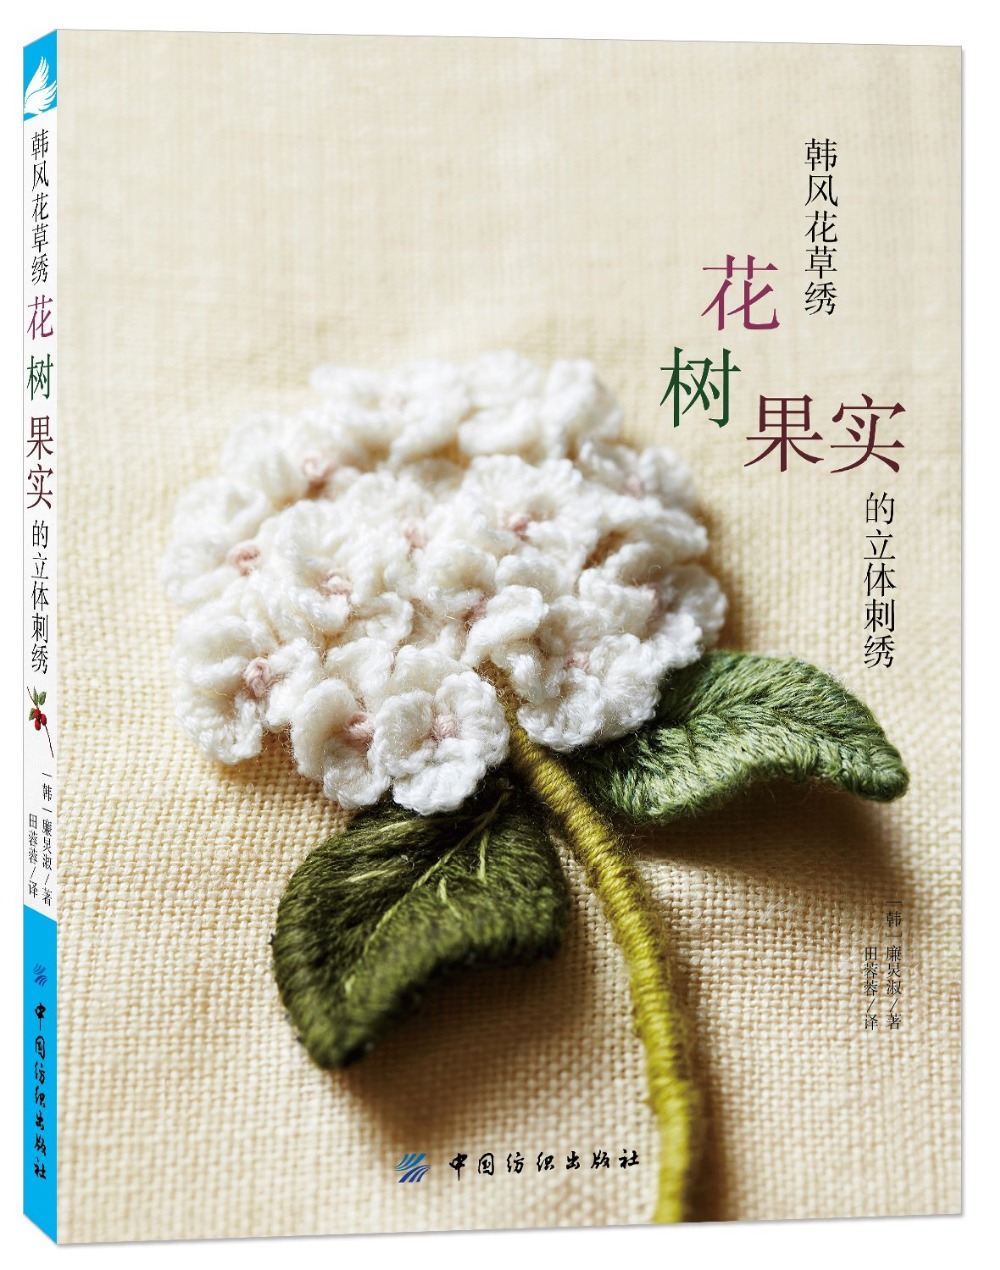 A three-dimensional embroidery of flowers, trees, and fruits / Chinese embroidery Handmade Art Design Book for bmw e36 318i 323i 325i 328i m3 carbon fiber headlight eyebrows eyelids 1992 1998